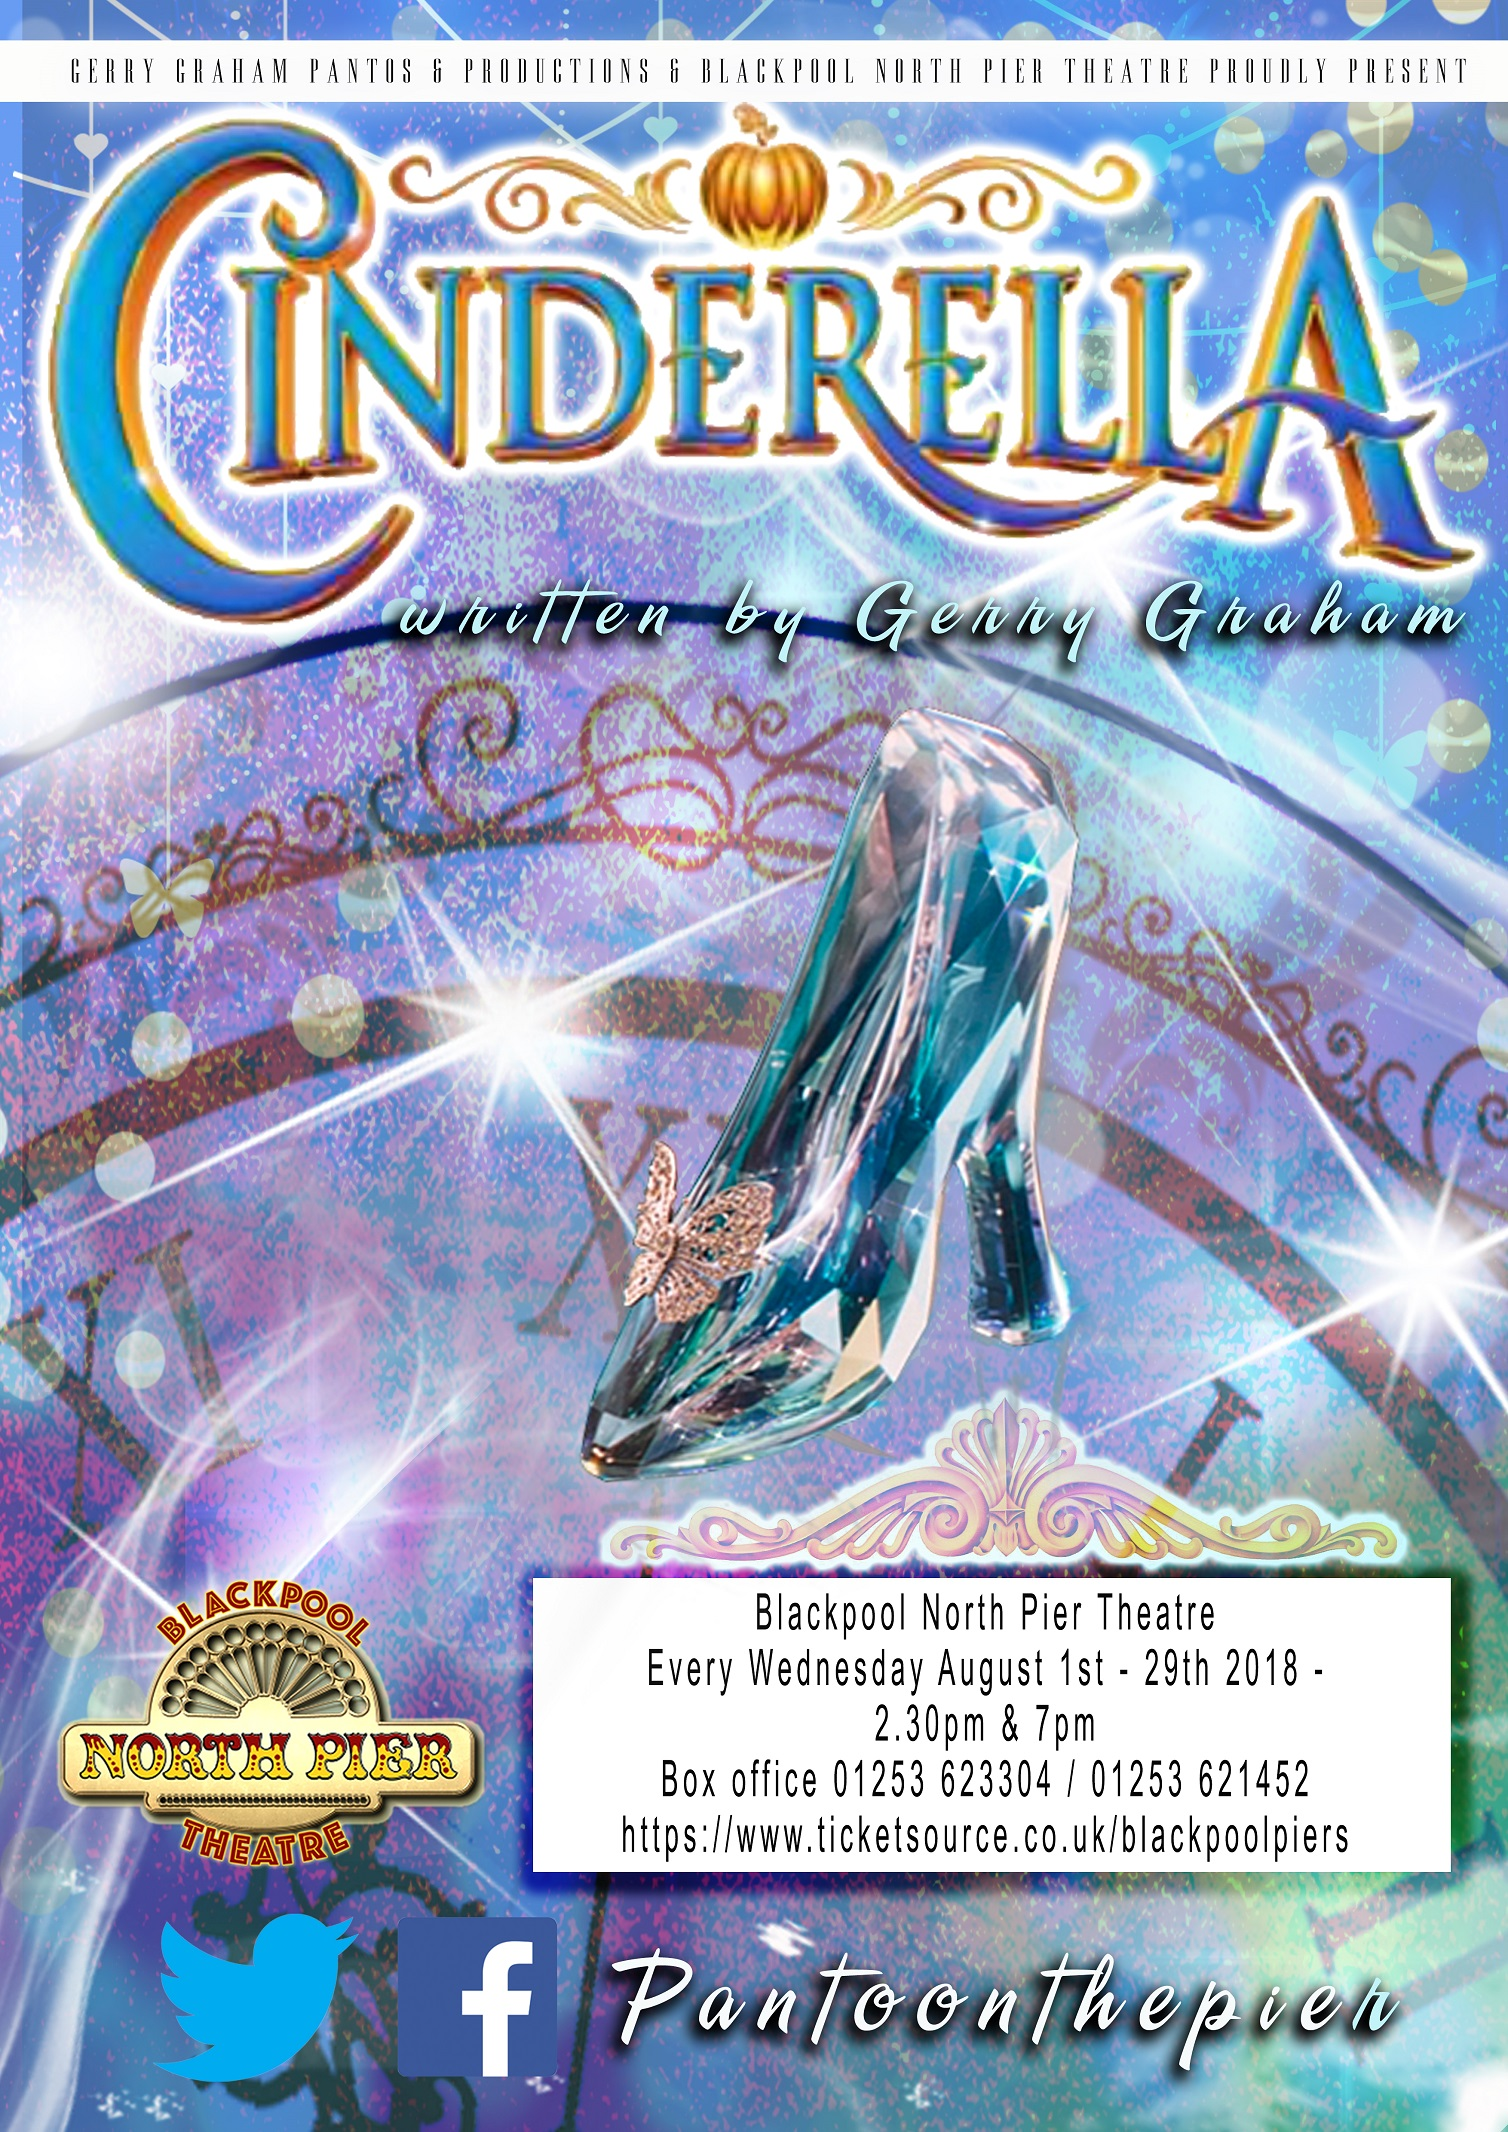 Cinderella Summer pantomime at blackpool north pier